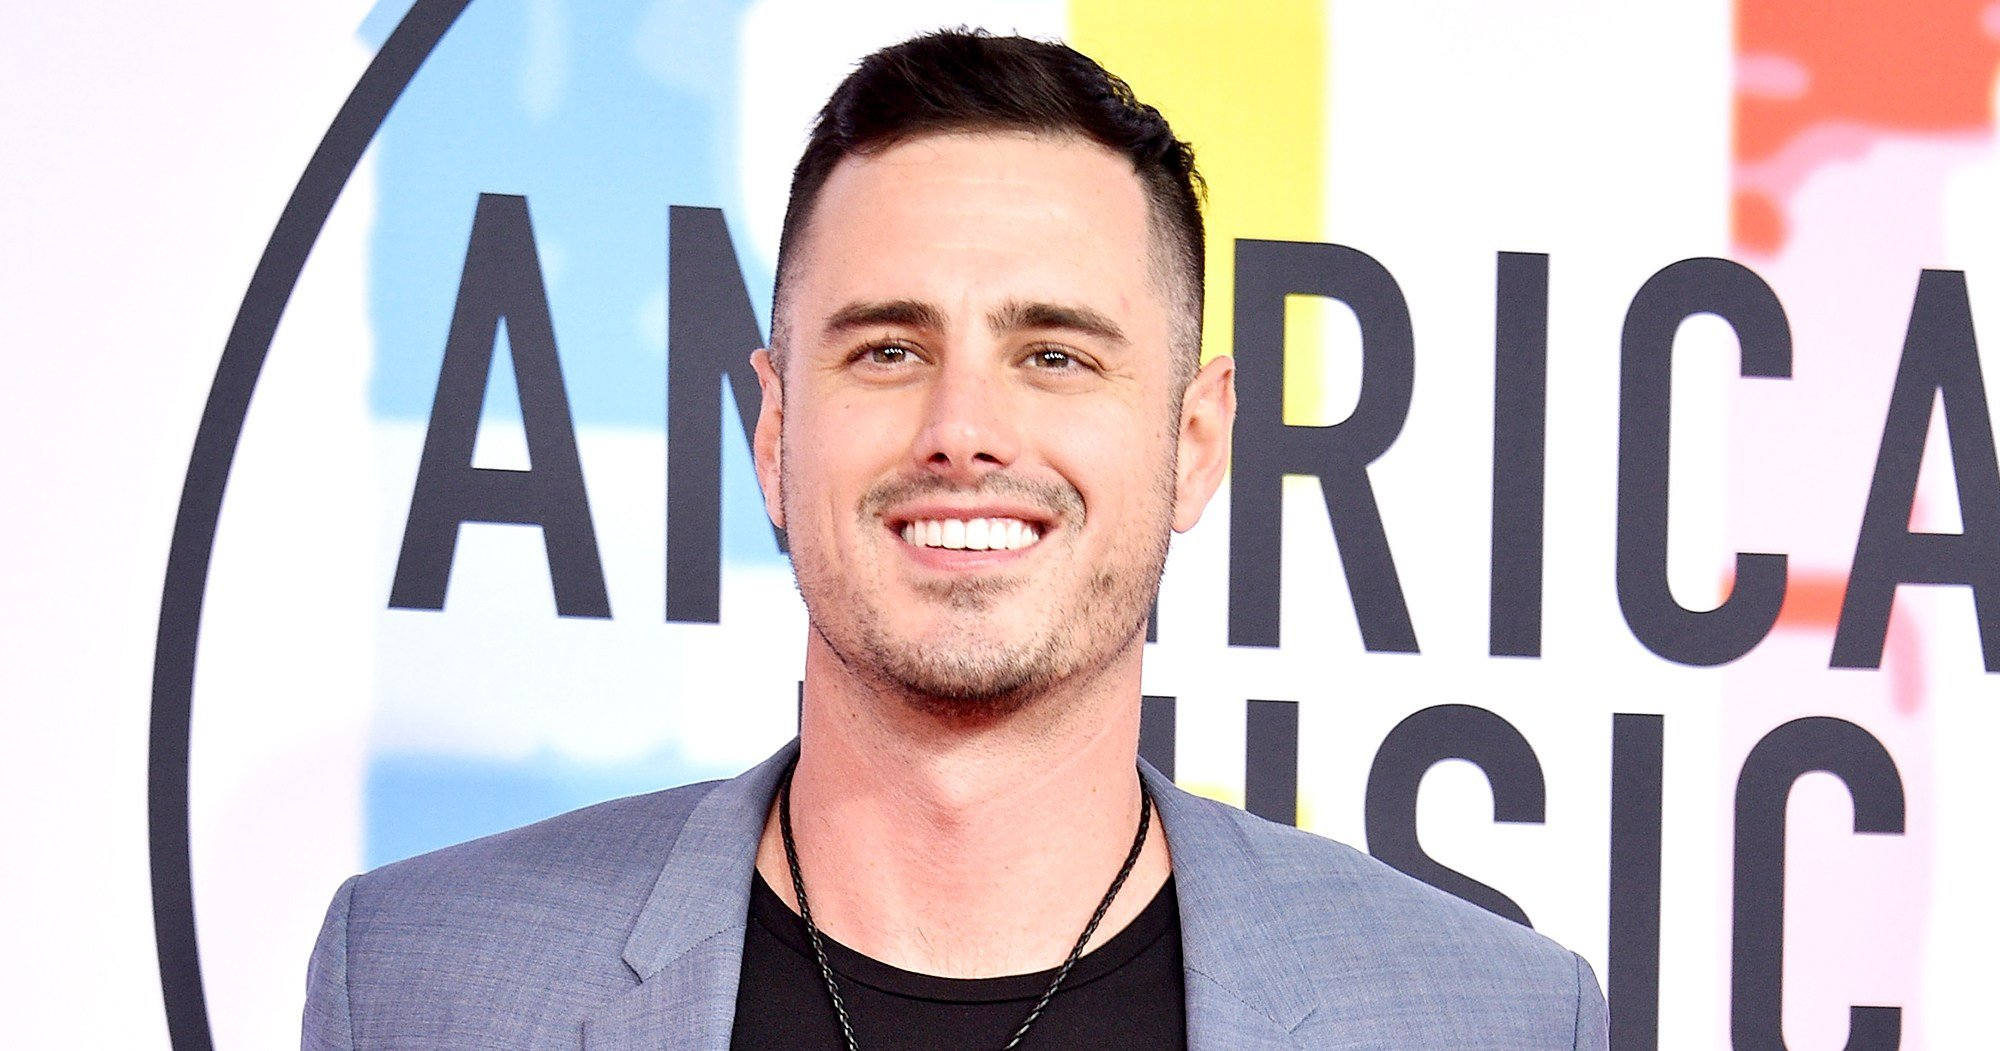 Ben Higgins Says the Woman He's Dating Is Not From 'The Bachelor'